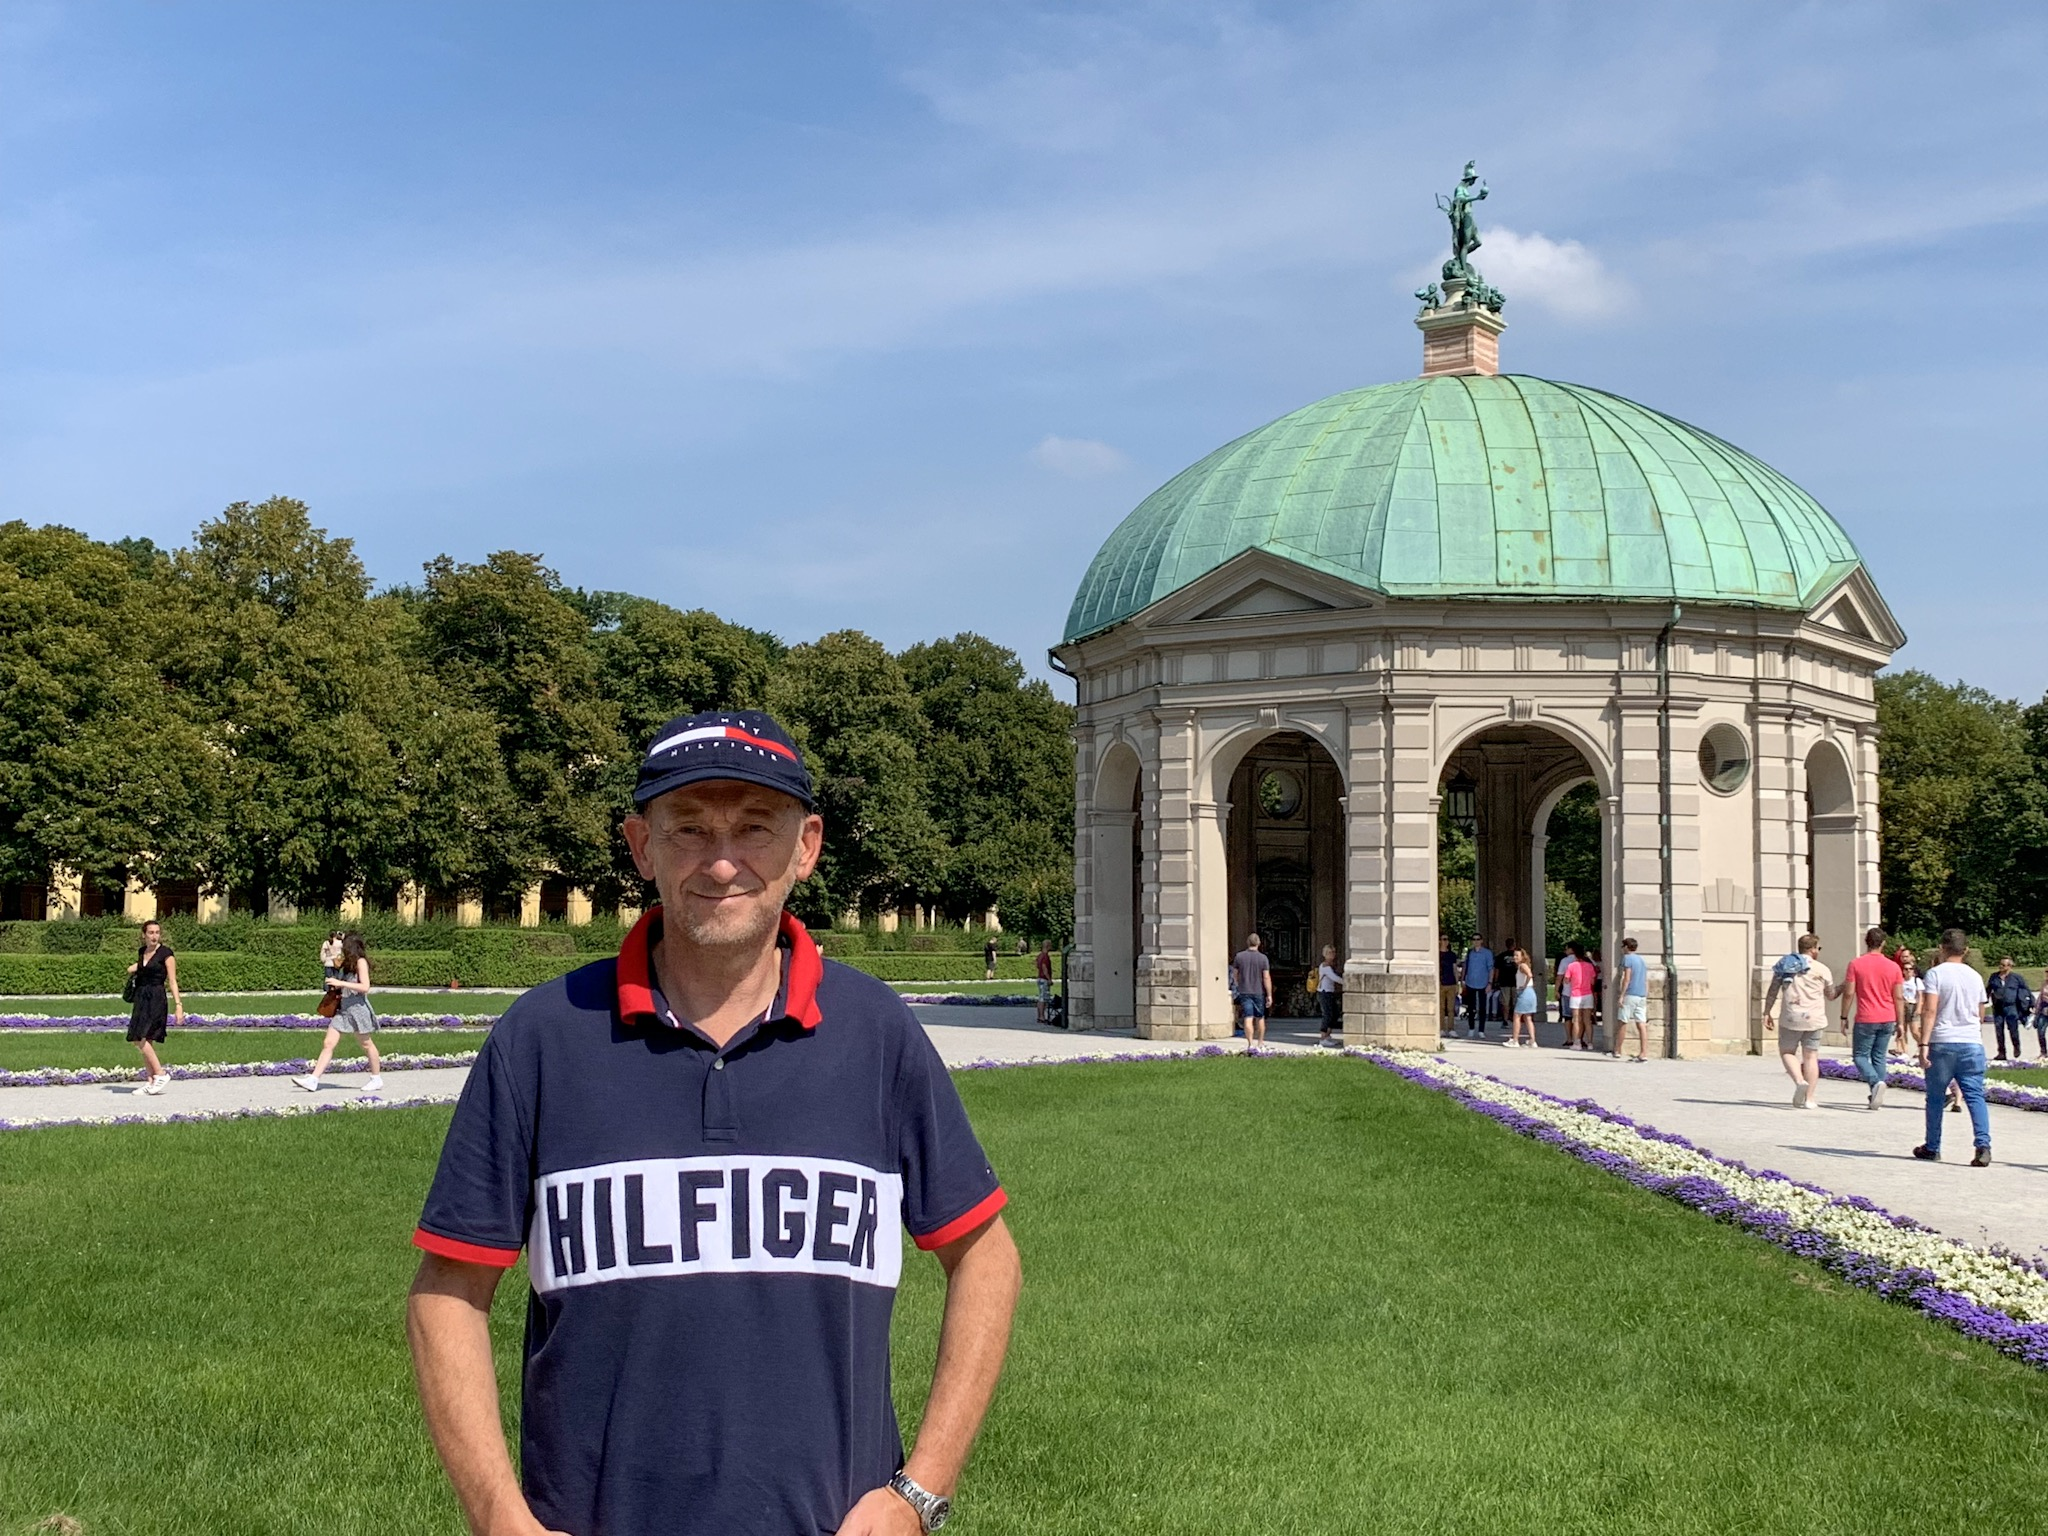 21 Reasons to love Munich: the majestic Hofgarten